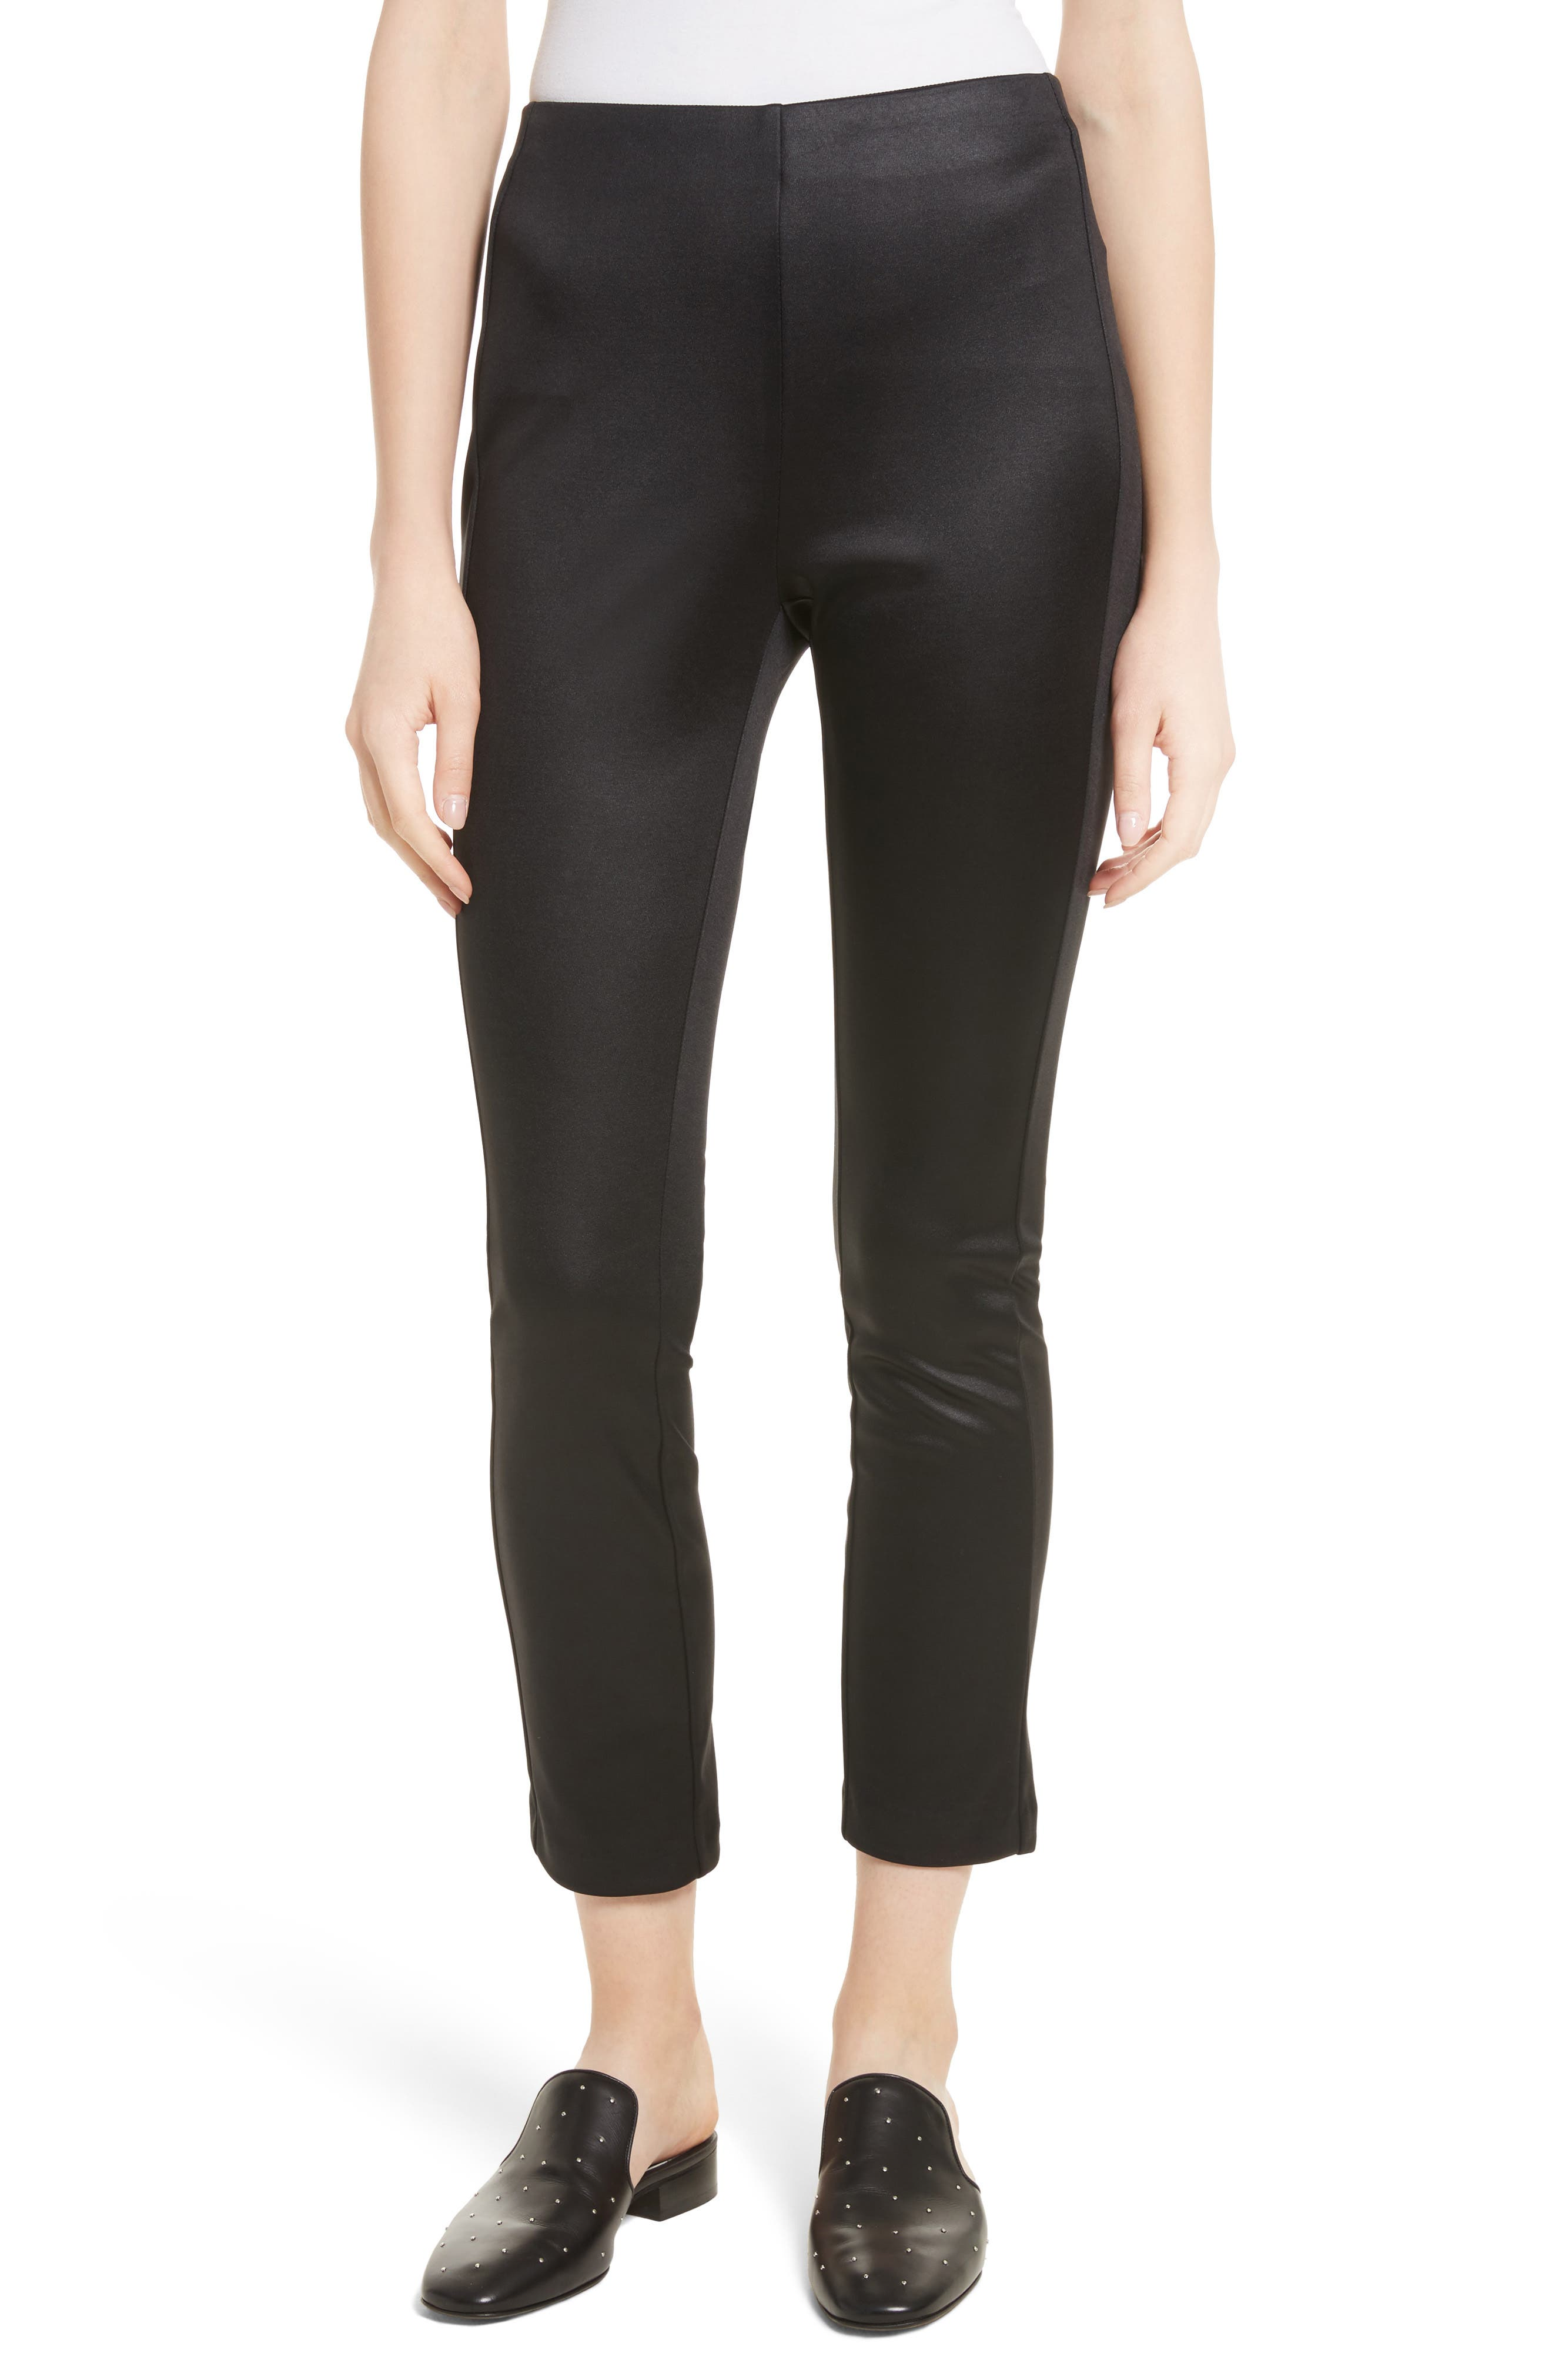 Simone Sateen Pants,                             Main thumbnail 1, color,                             Black